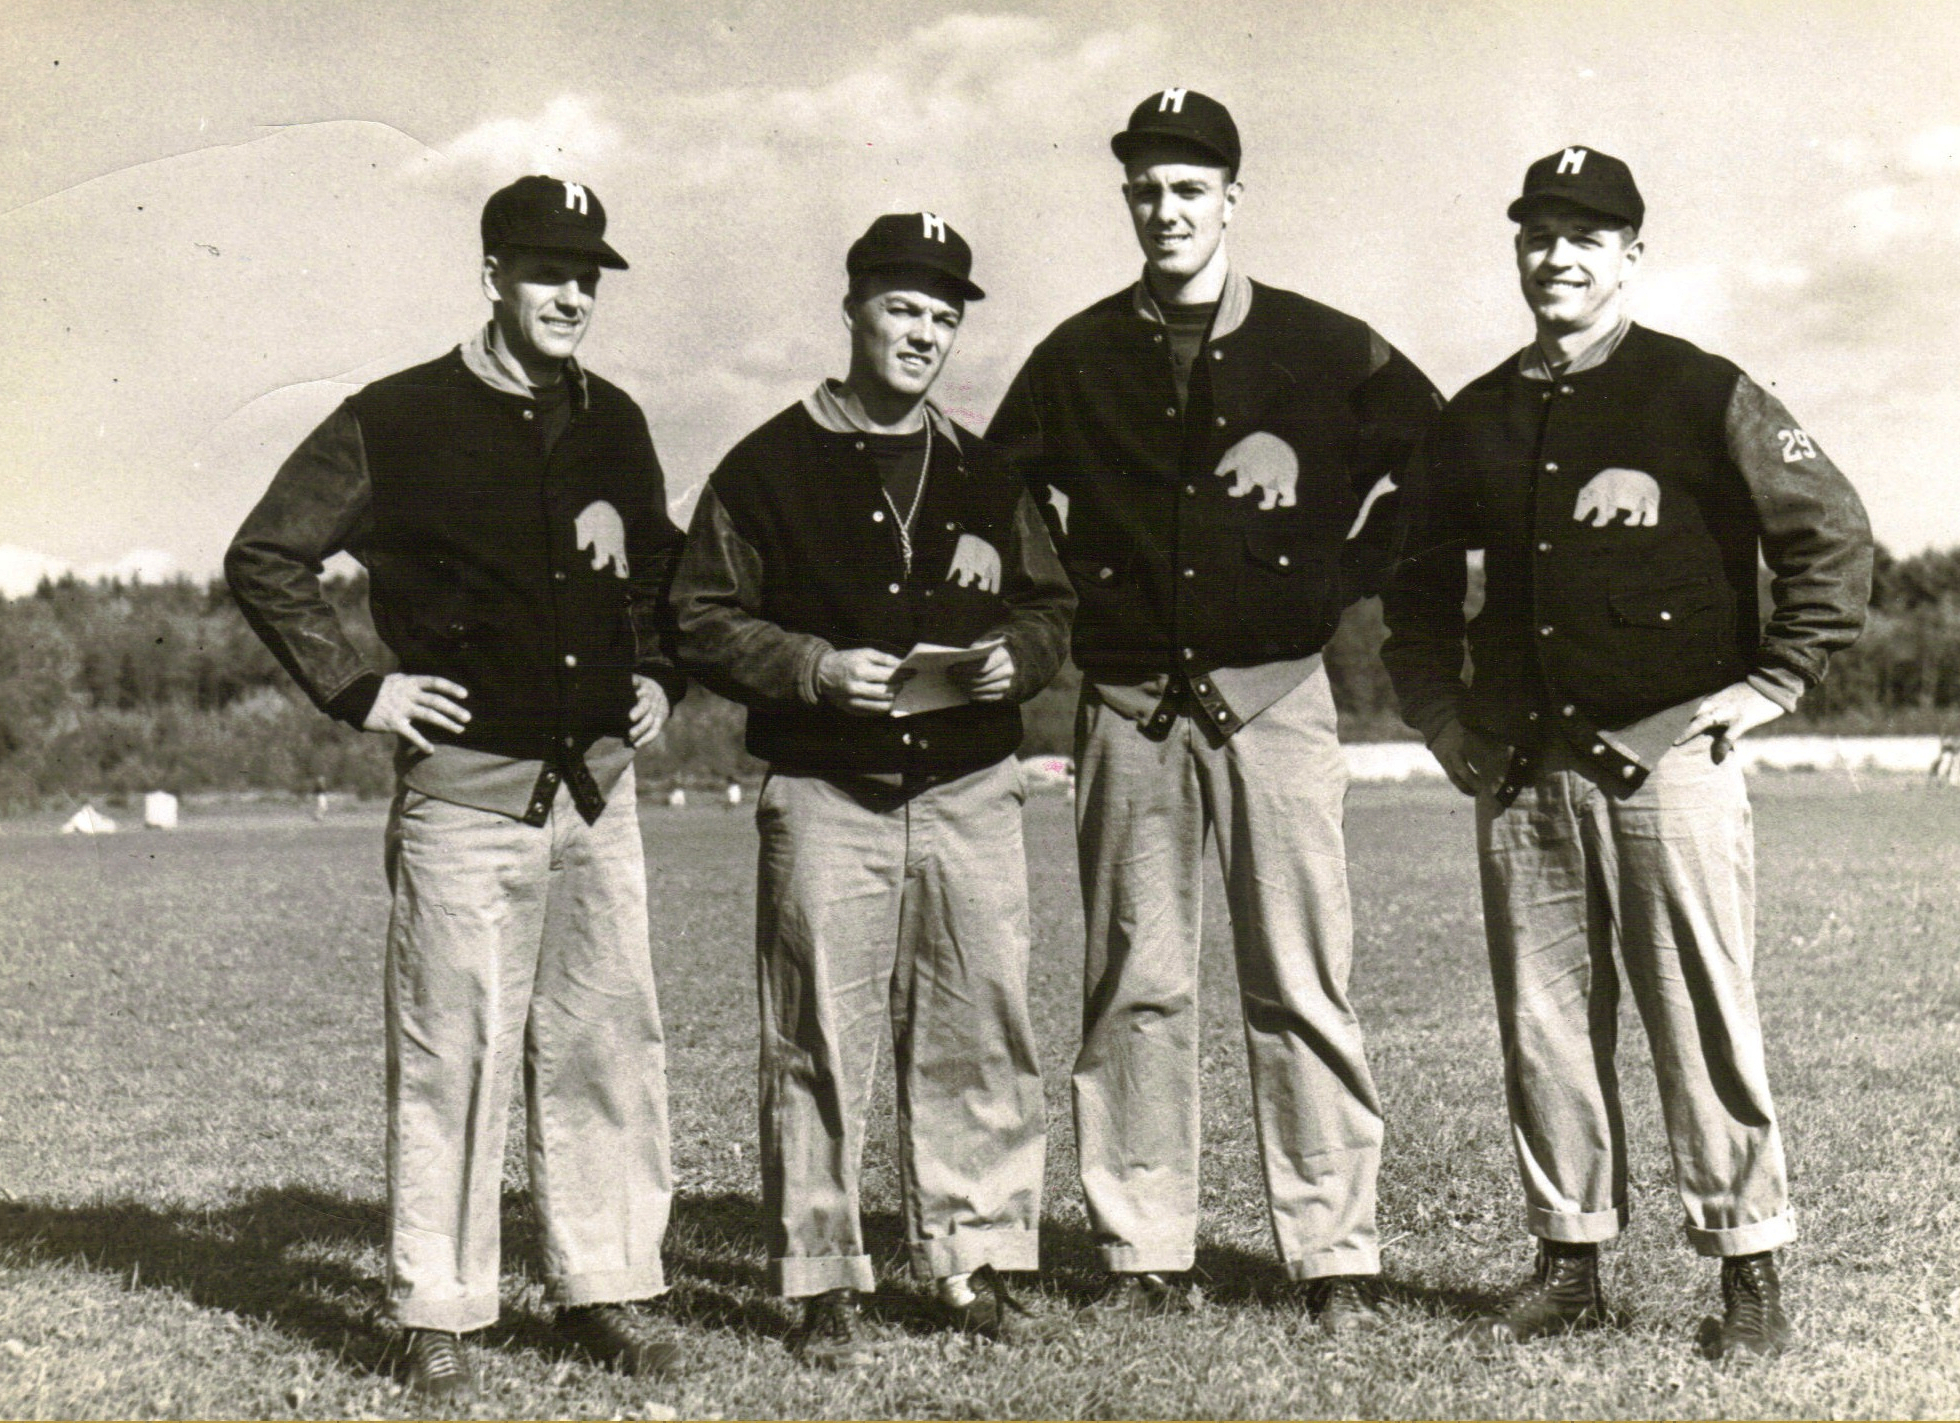 https://westyvt.files.wordpress.com/2012/01/38-1949-maine-coaches-nelson-westerman-cuddibach-lude.jpg